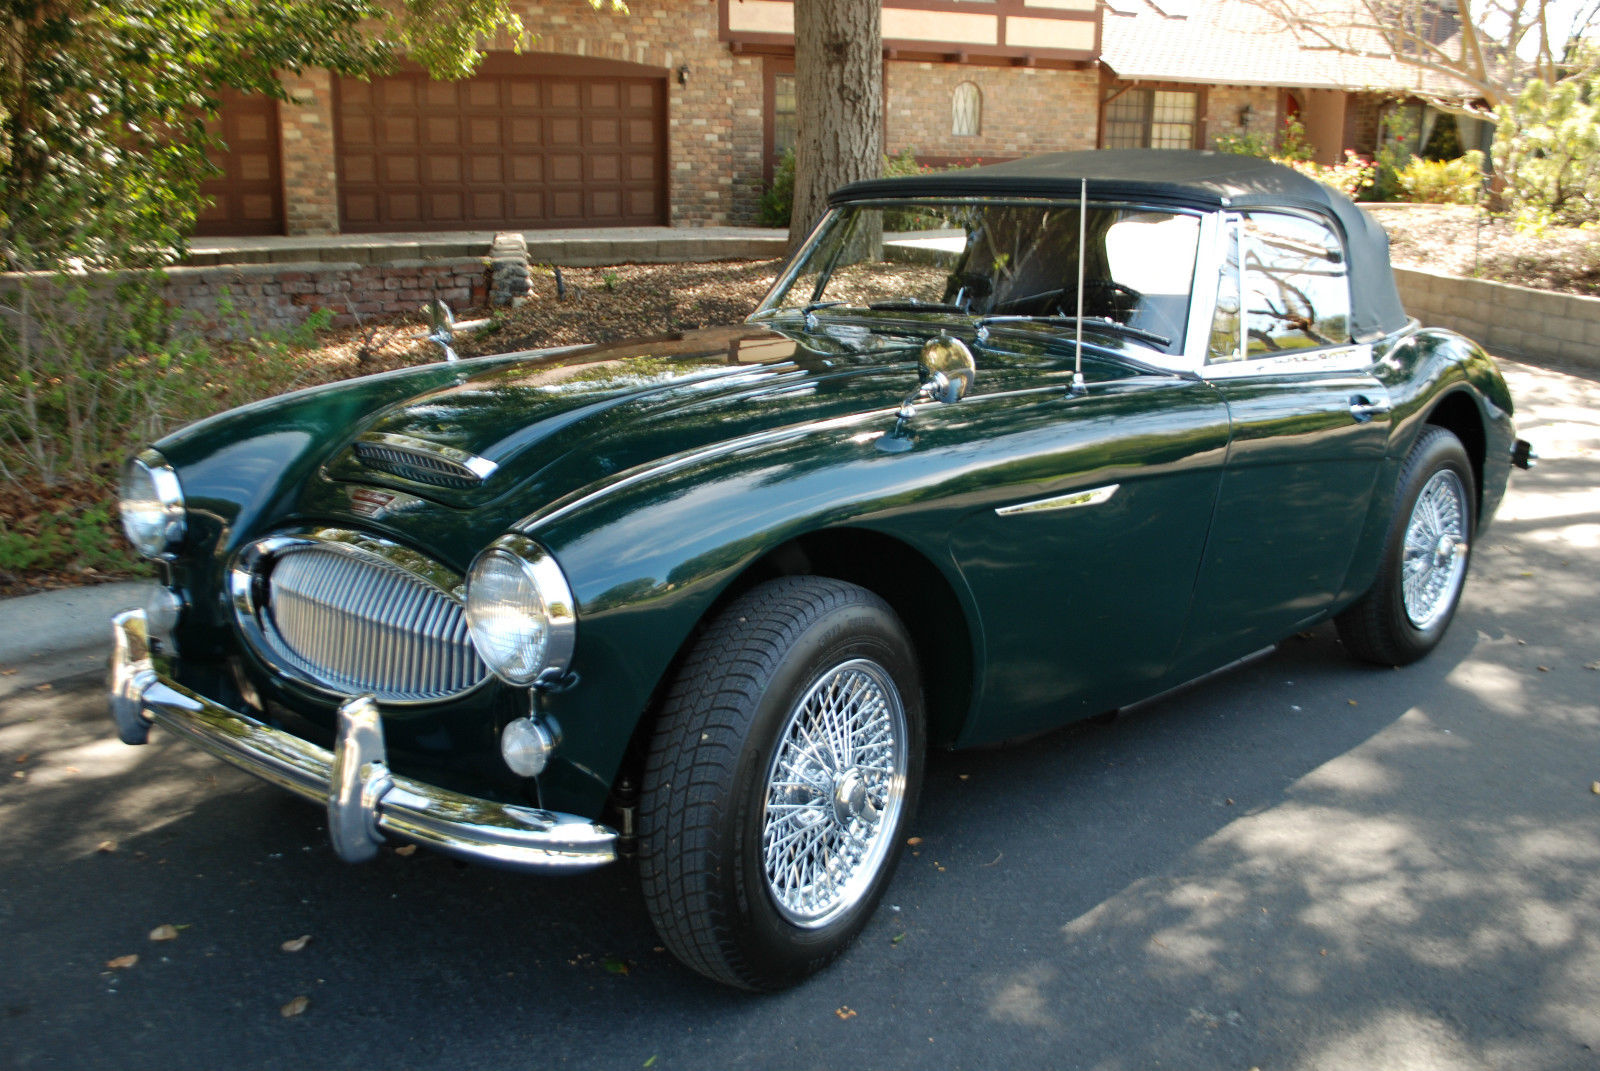 1964 austin healey 3000 mk iii bj8 british racing green with black leather trim classic austin. Black Bedroom Furniture Sets. Home Design Ideas